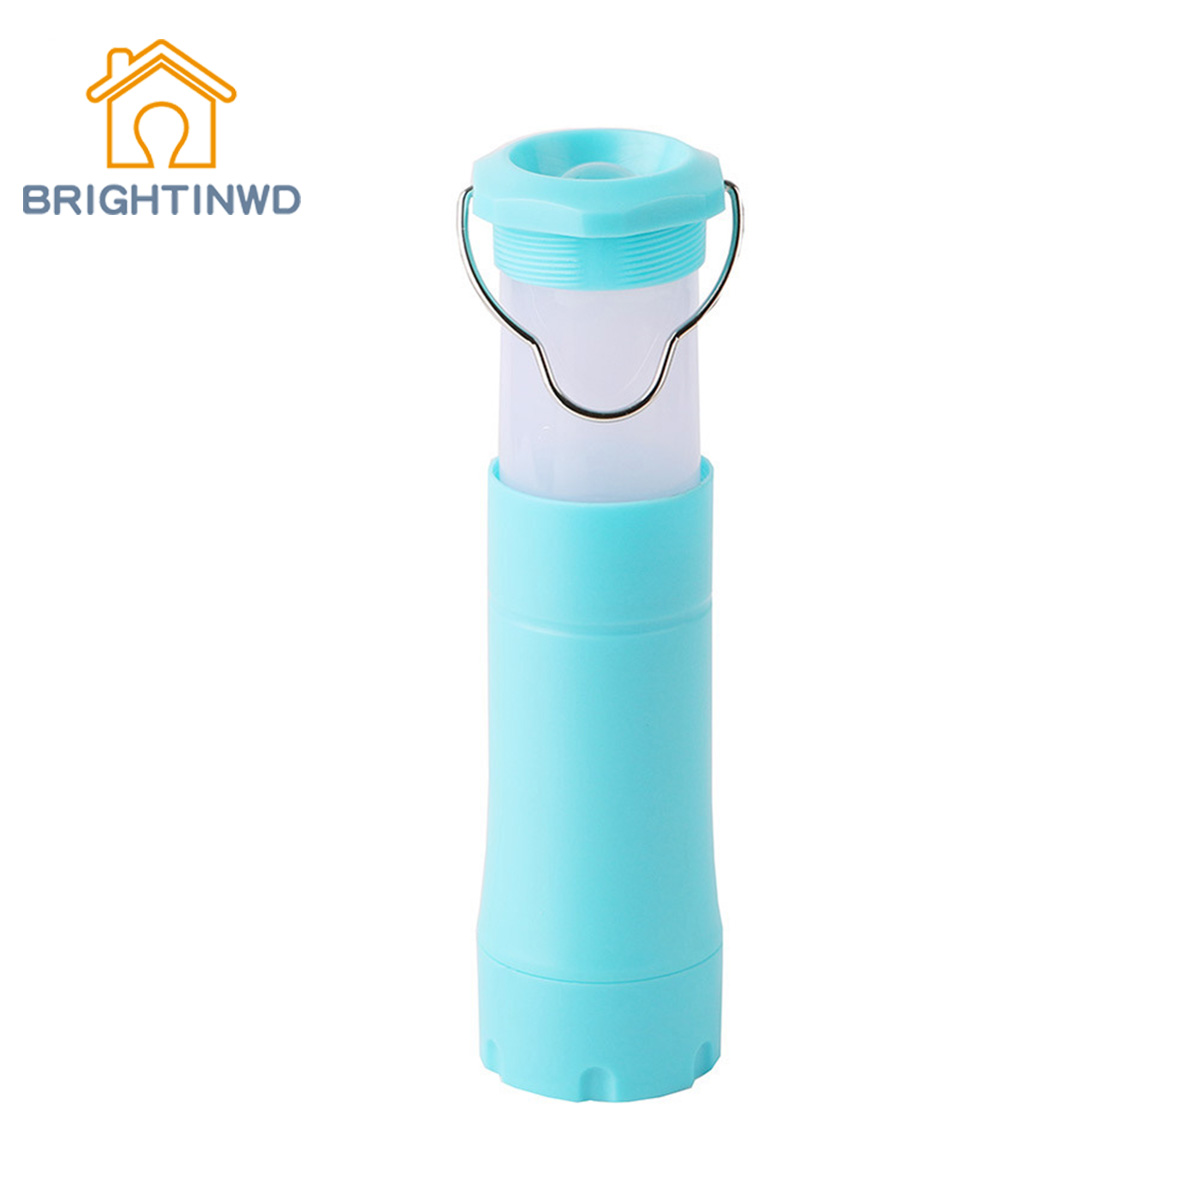 BRIGHTINWD Portable Lantern Lanterns Camping Flashlight Luminarias Waterproof LED Flashlight Tent Lights Camping Led Tent Light